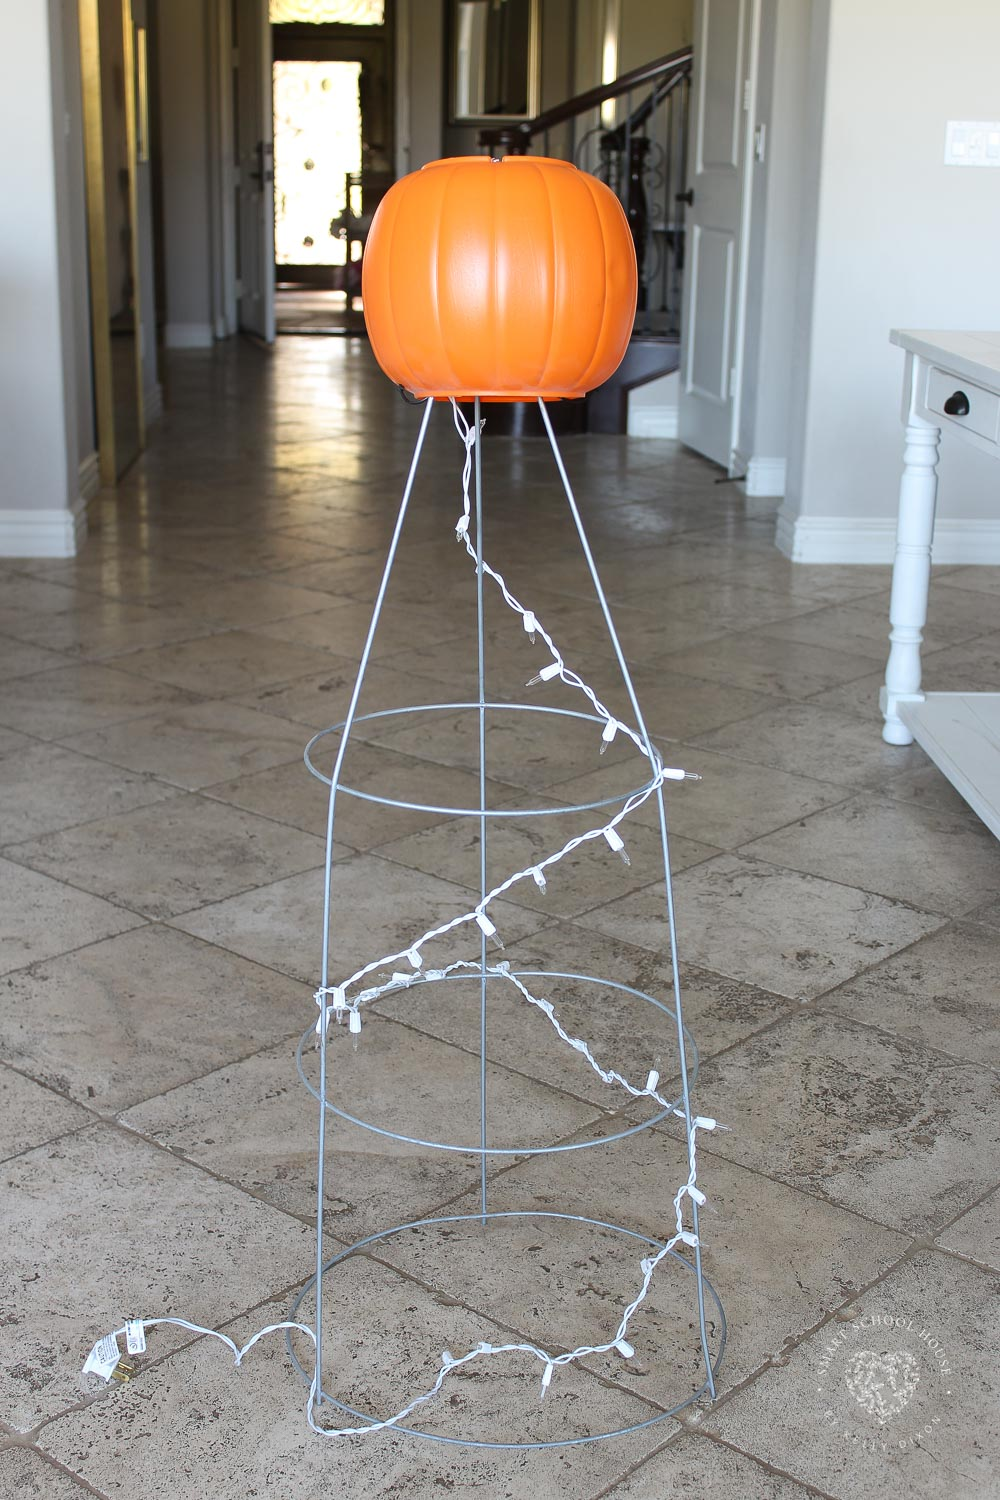 How to Make a Tomato Cage Ghost